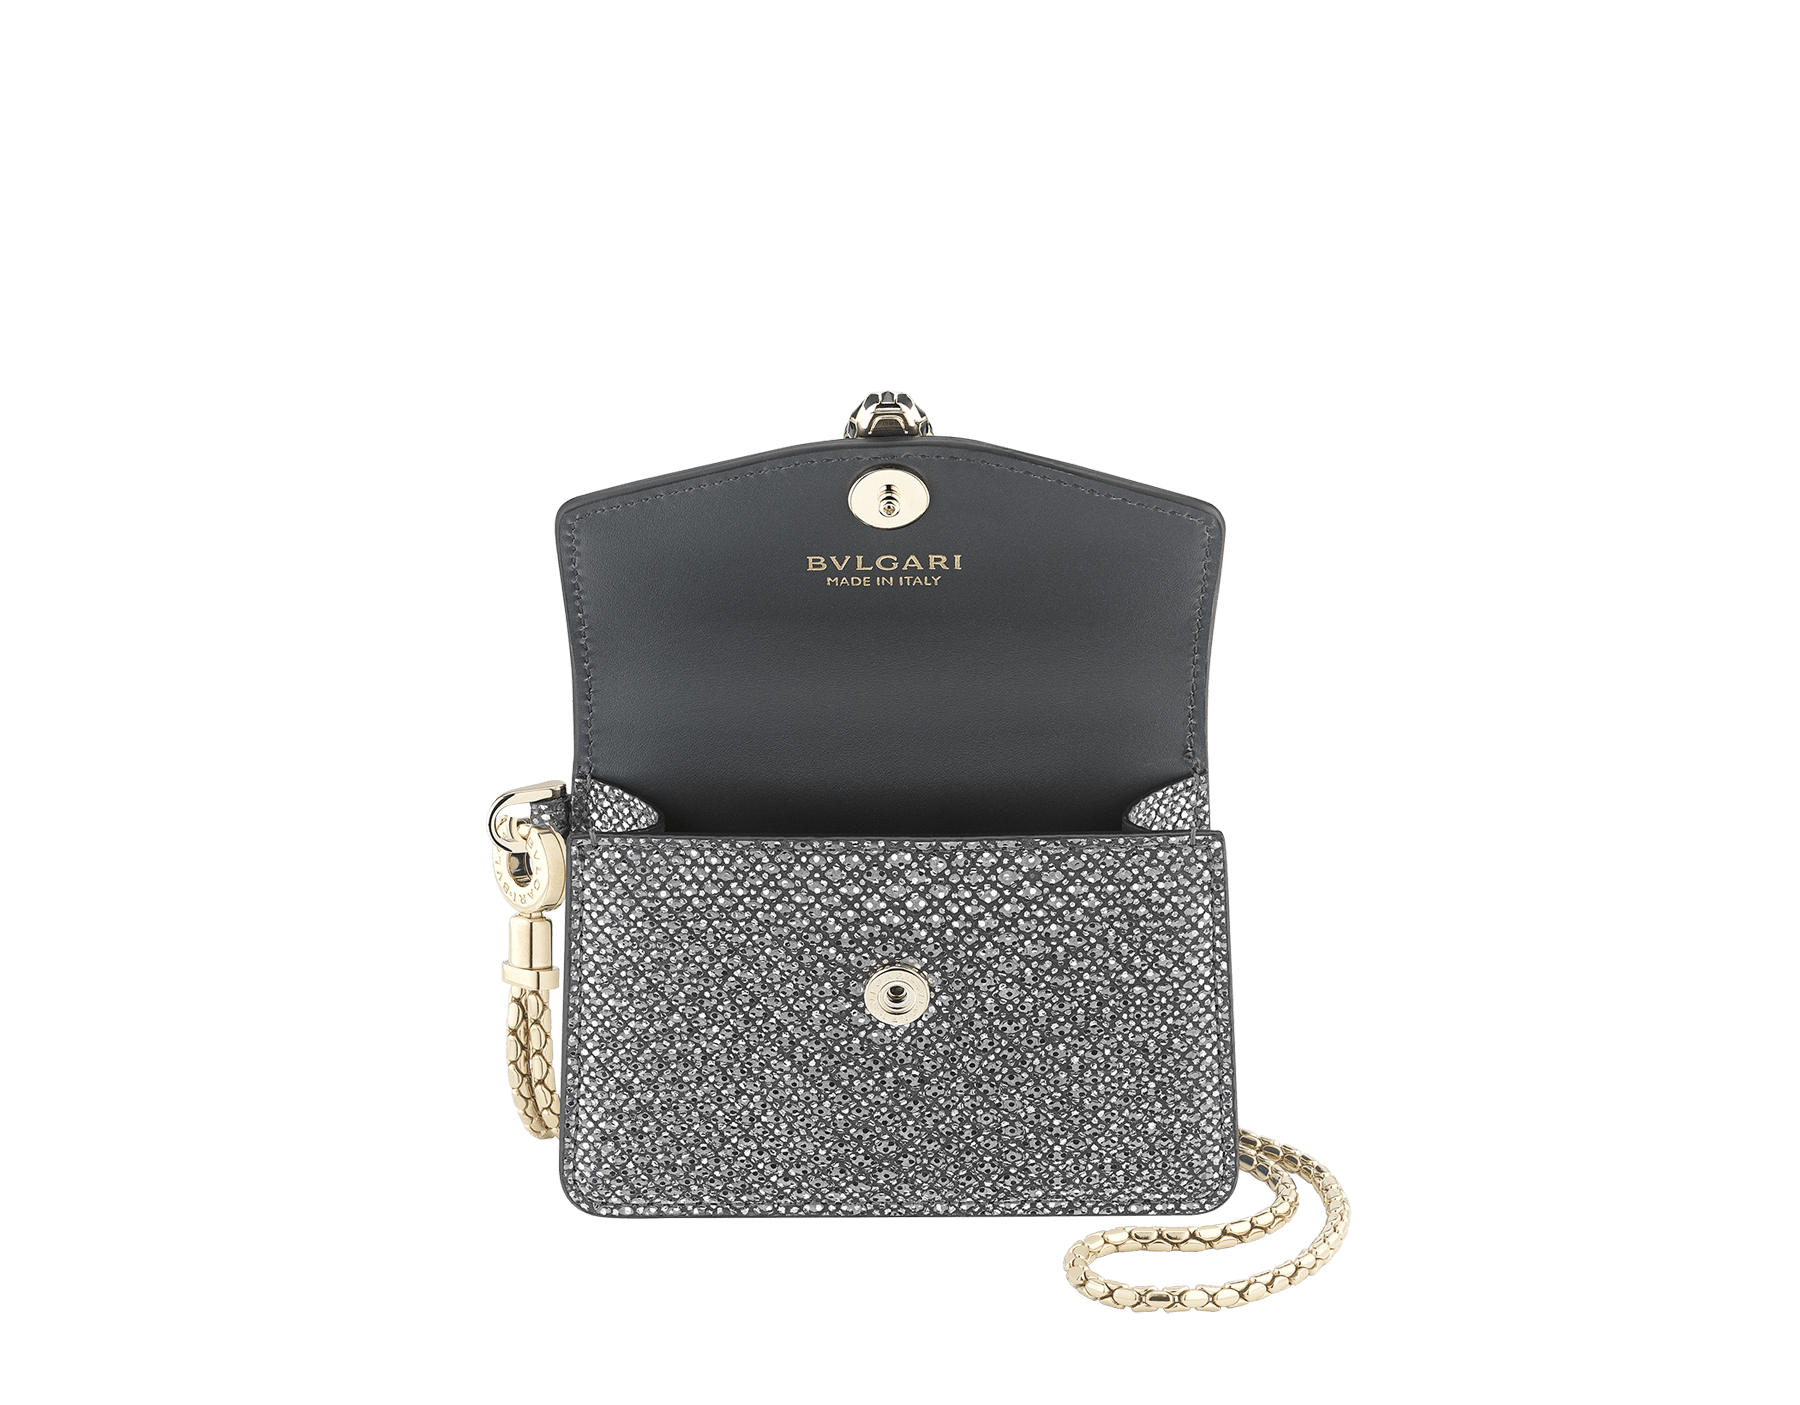 Serpenti Forever Travel Holders Kit in charcoal diamond metallic karung skin. Iconic snake head closure in black and glitter charcoal diamond enamel, with black enamel eyes. 289324 image 2